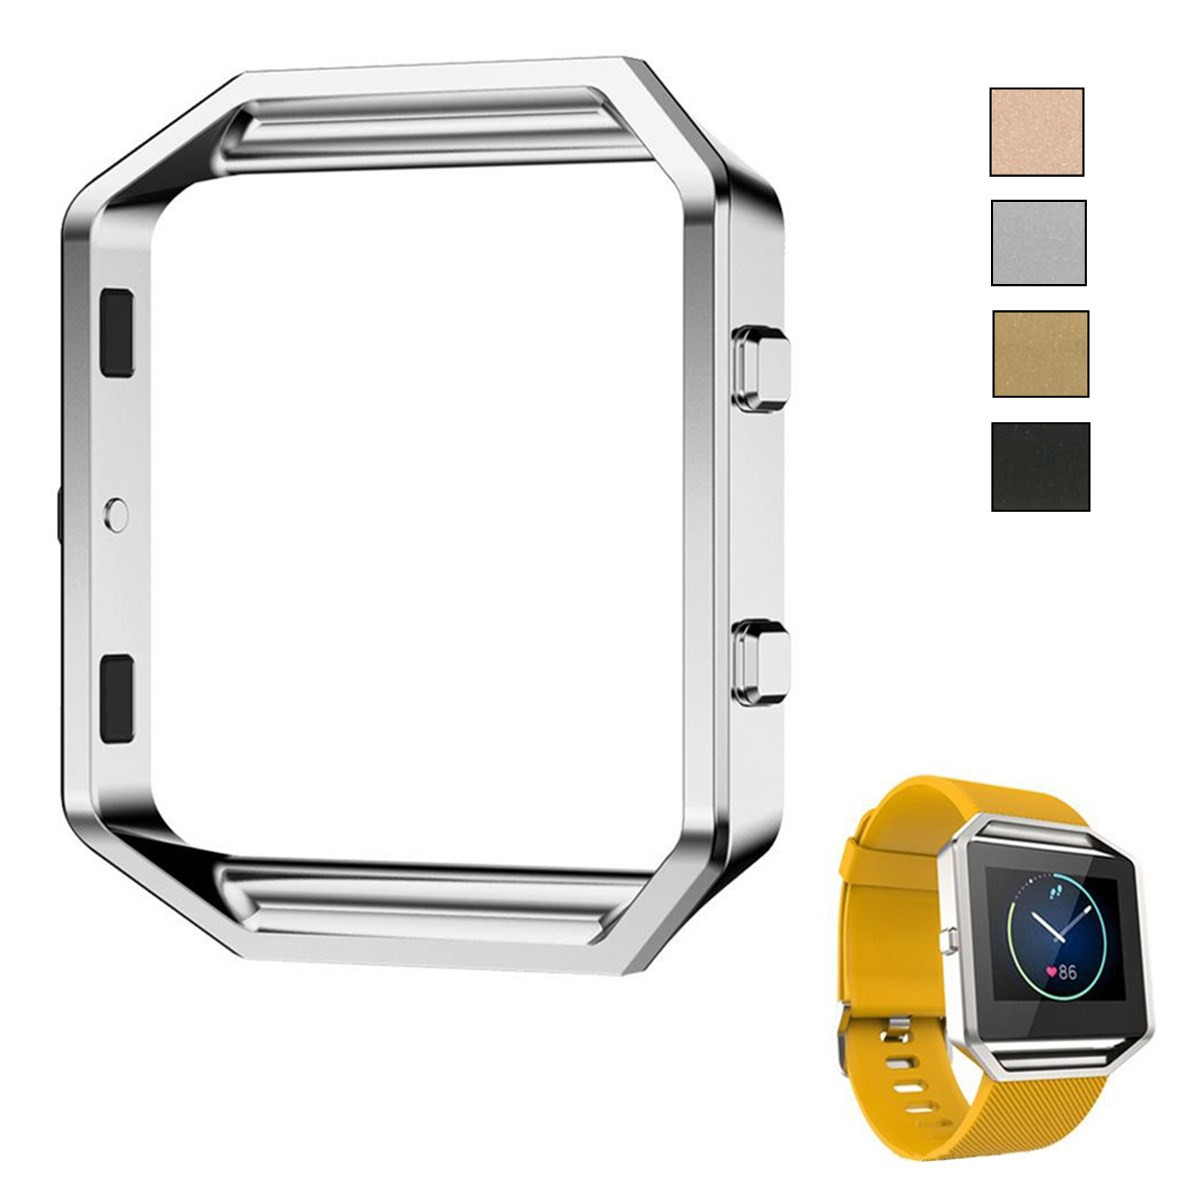 Stainless Steel Metal Watch Frame Replacement Holder Shell For/Fitbit Blaze Watches Accessories Gold Silver Black Rose Gold metal ring holder for smartphones rose gold